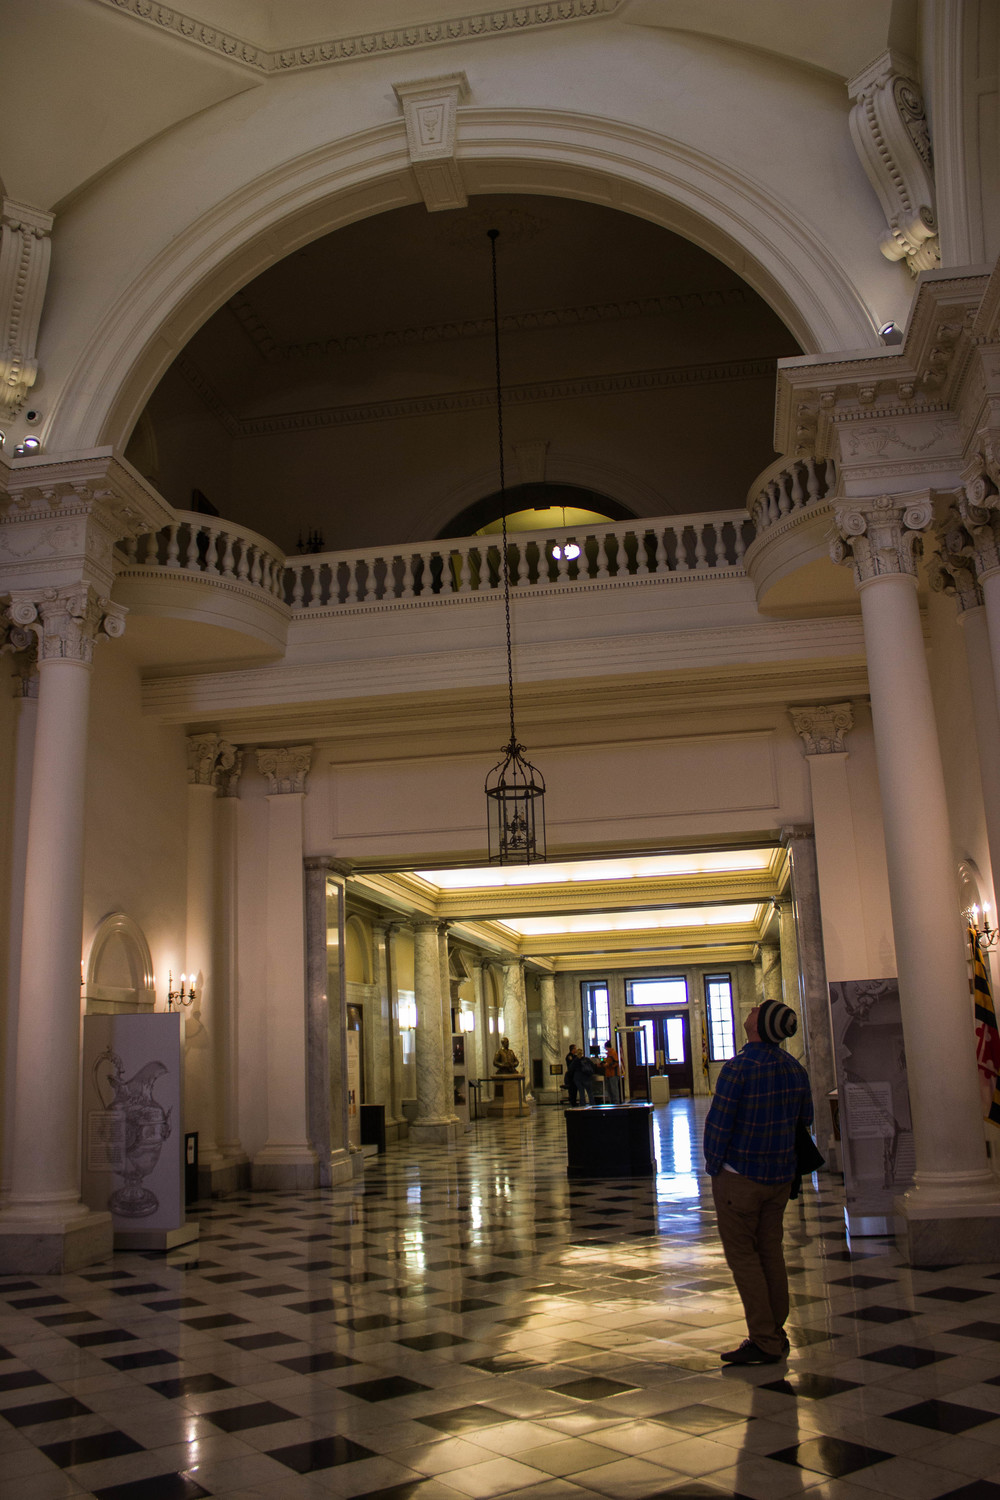 annapolis-state-house-interior.jpg